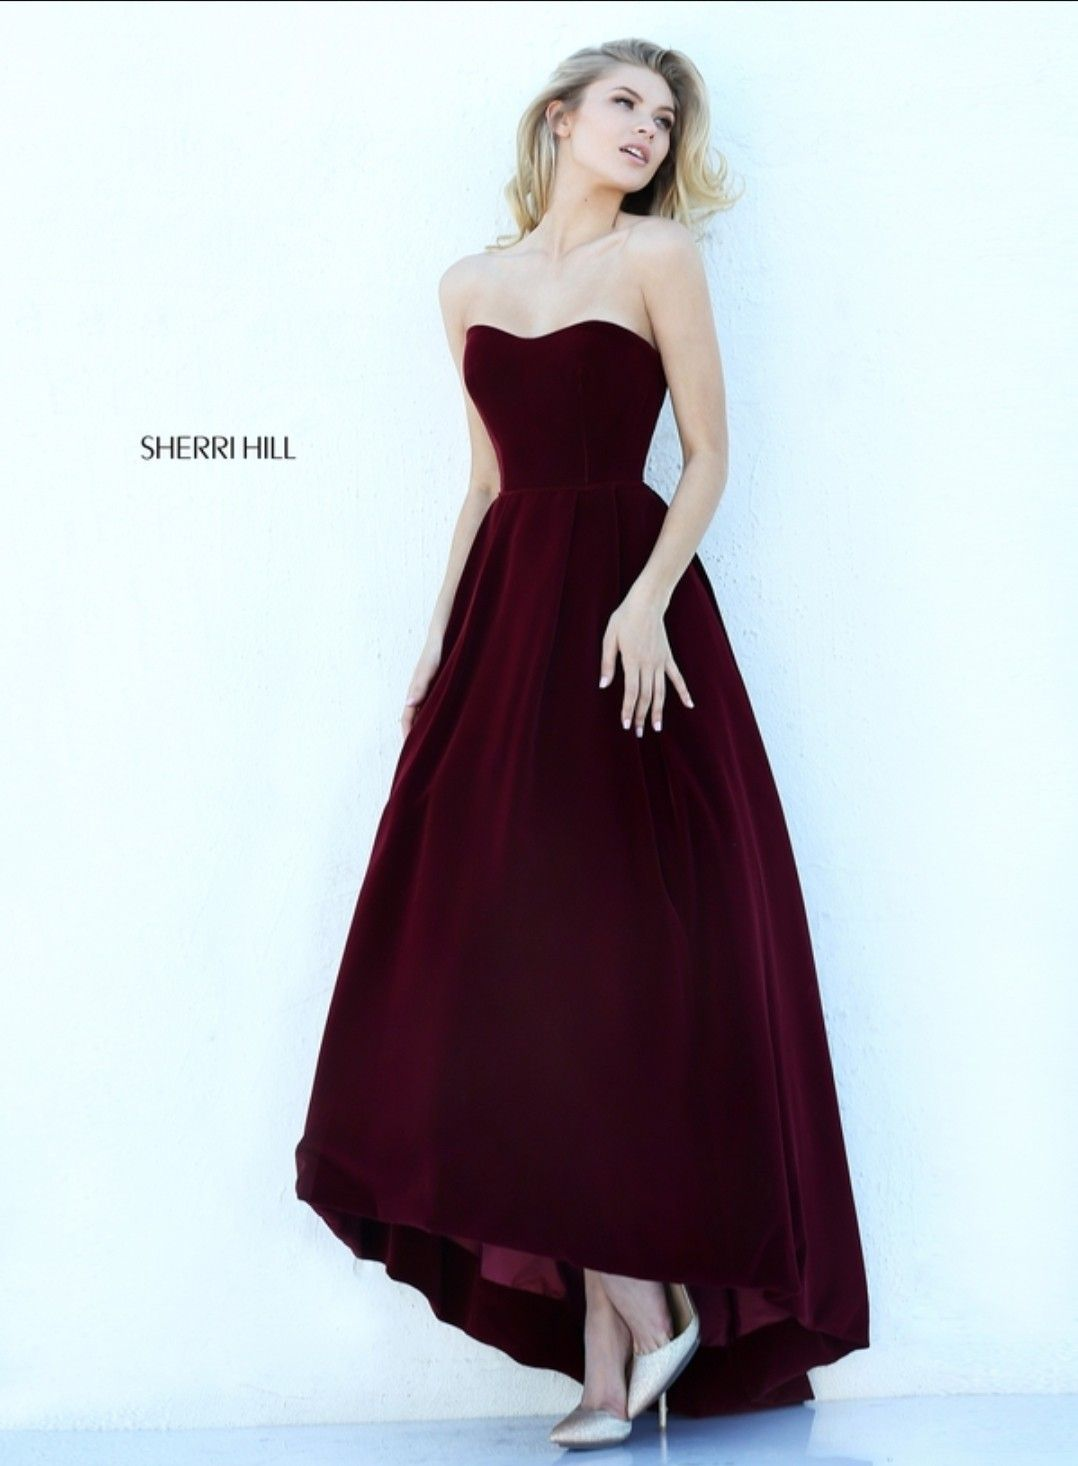 Pin by tnbelle on hi low dresses in pinterest dresses